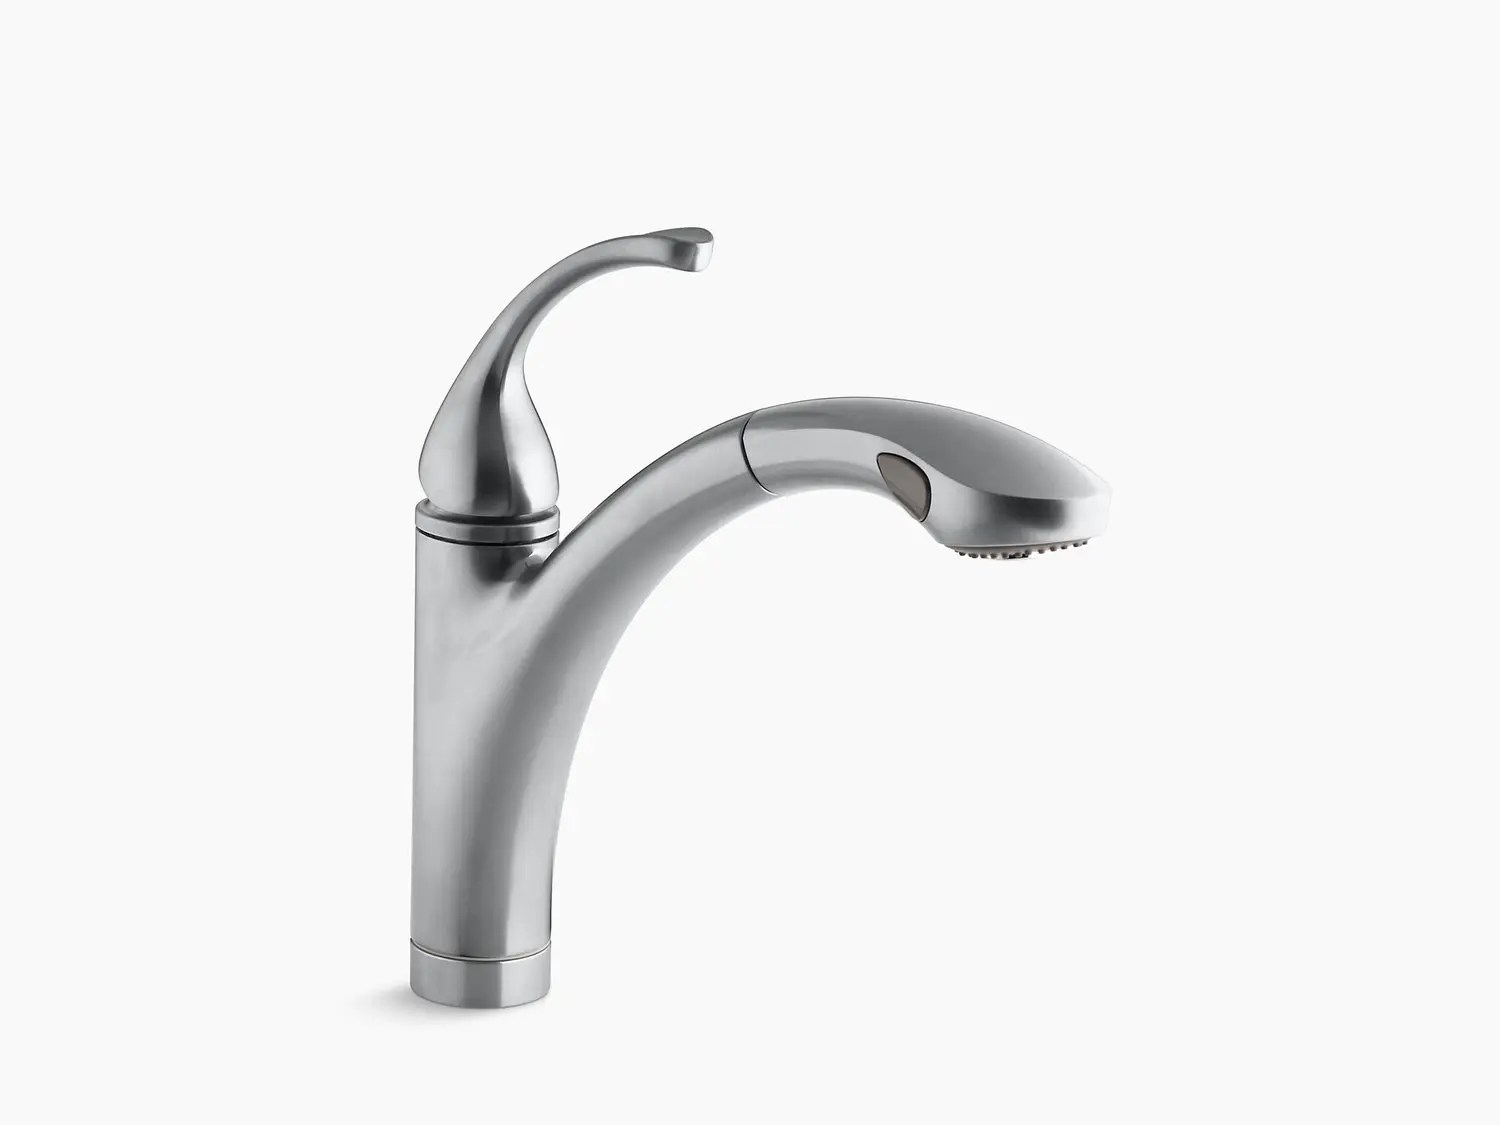 brushed chrome single hole or 3 hole kitchen sink faucet with 10 1 8 pull out spray spout